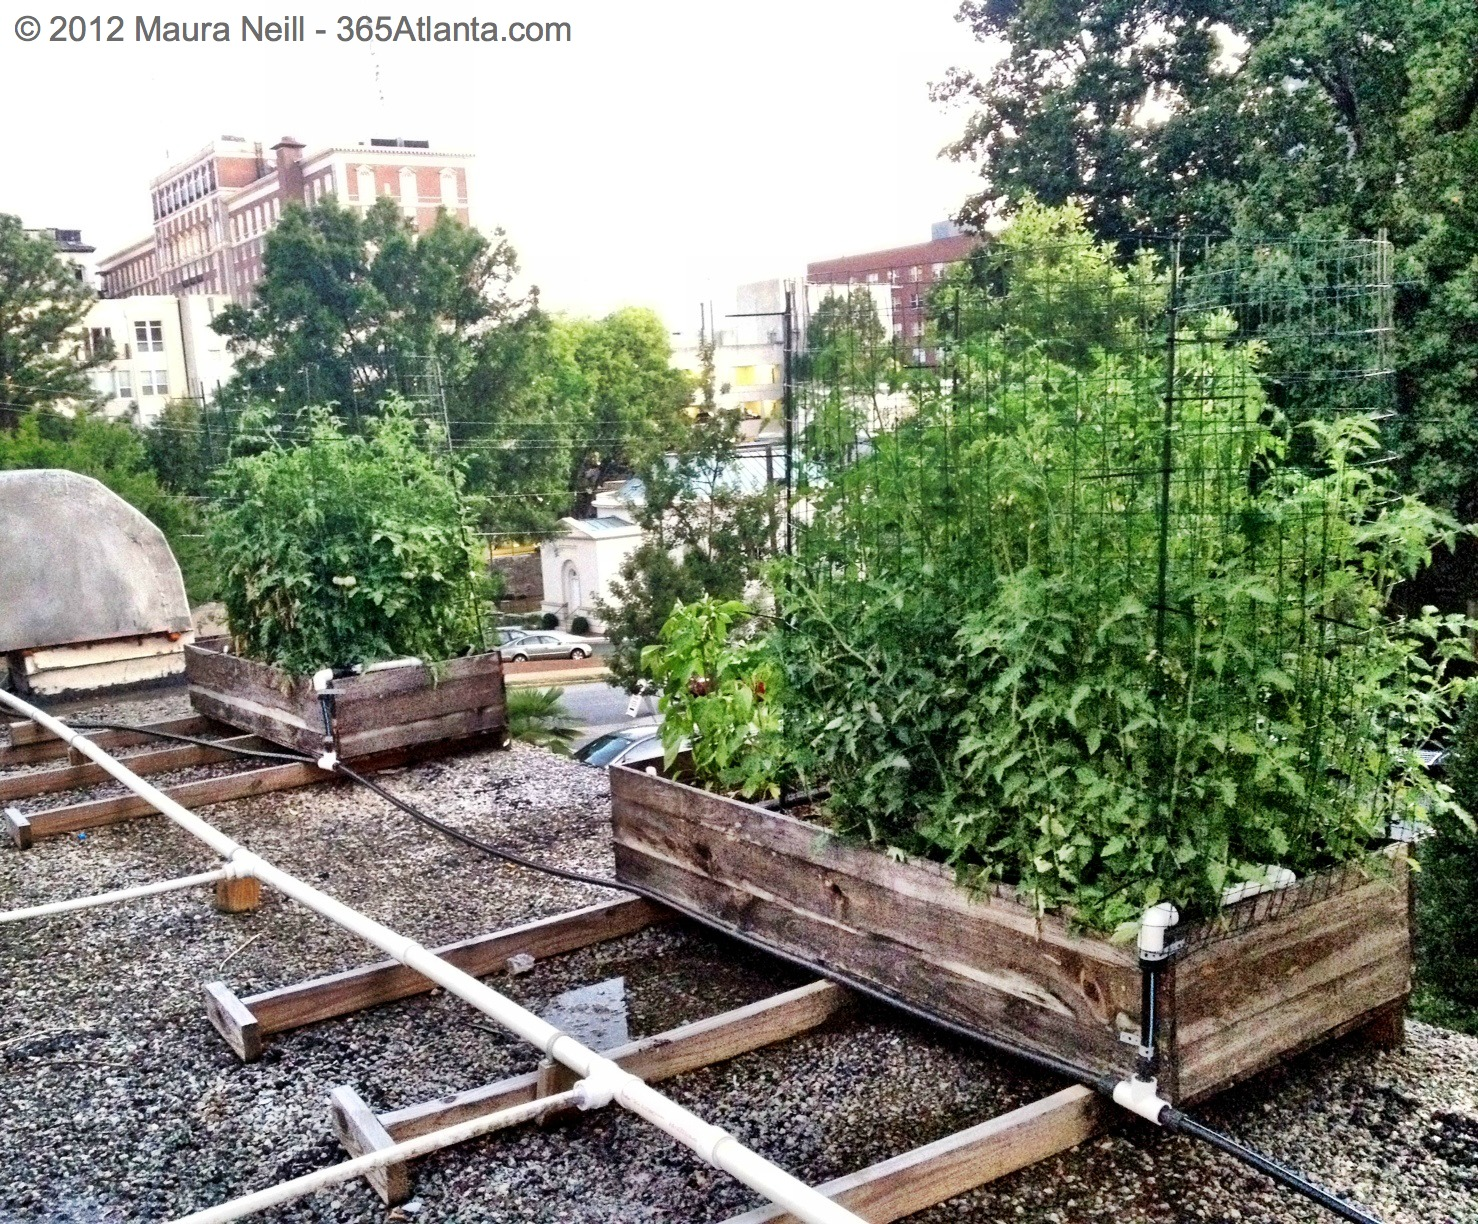 Exploring Eccos Rooftop Garden with Executive Chef Craig Richards